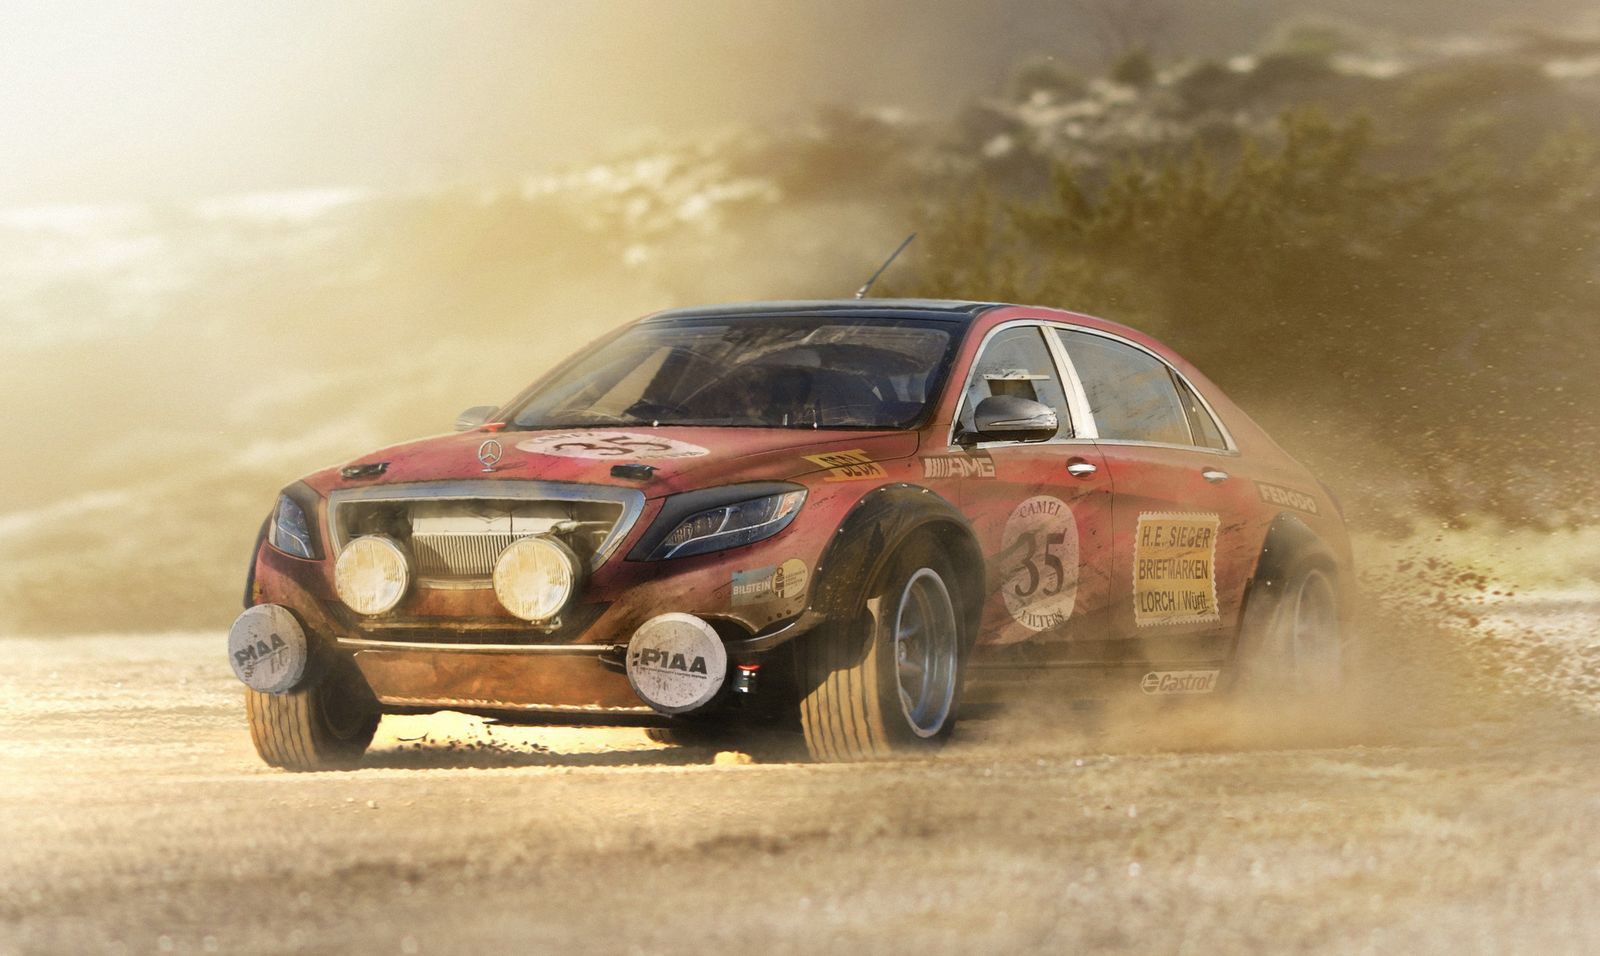 Des voitures modernes transform es pour le rallye for Rally mercedes benz